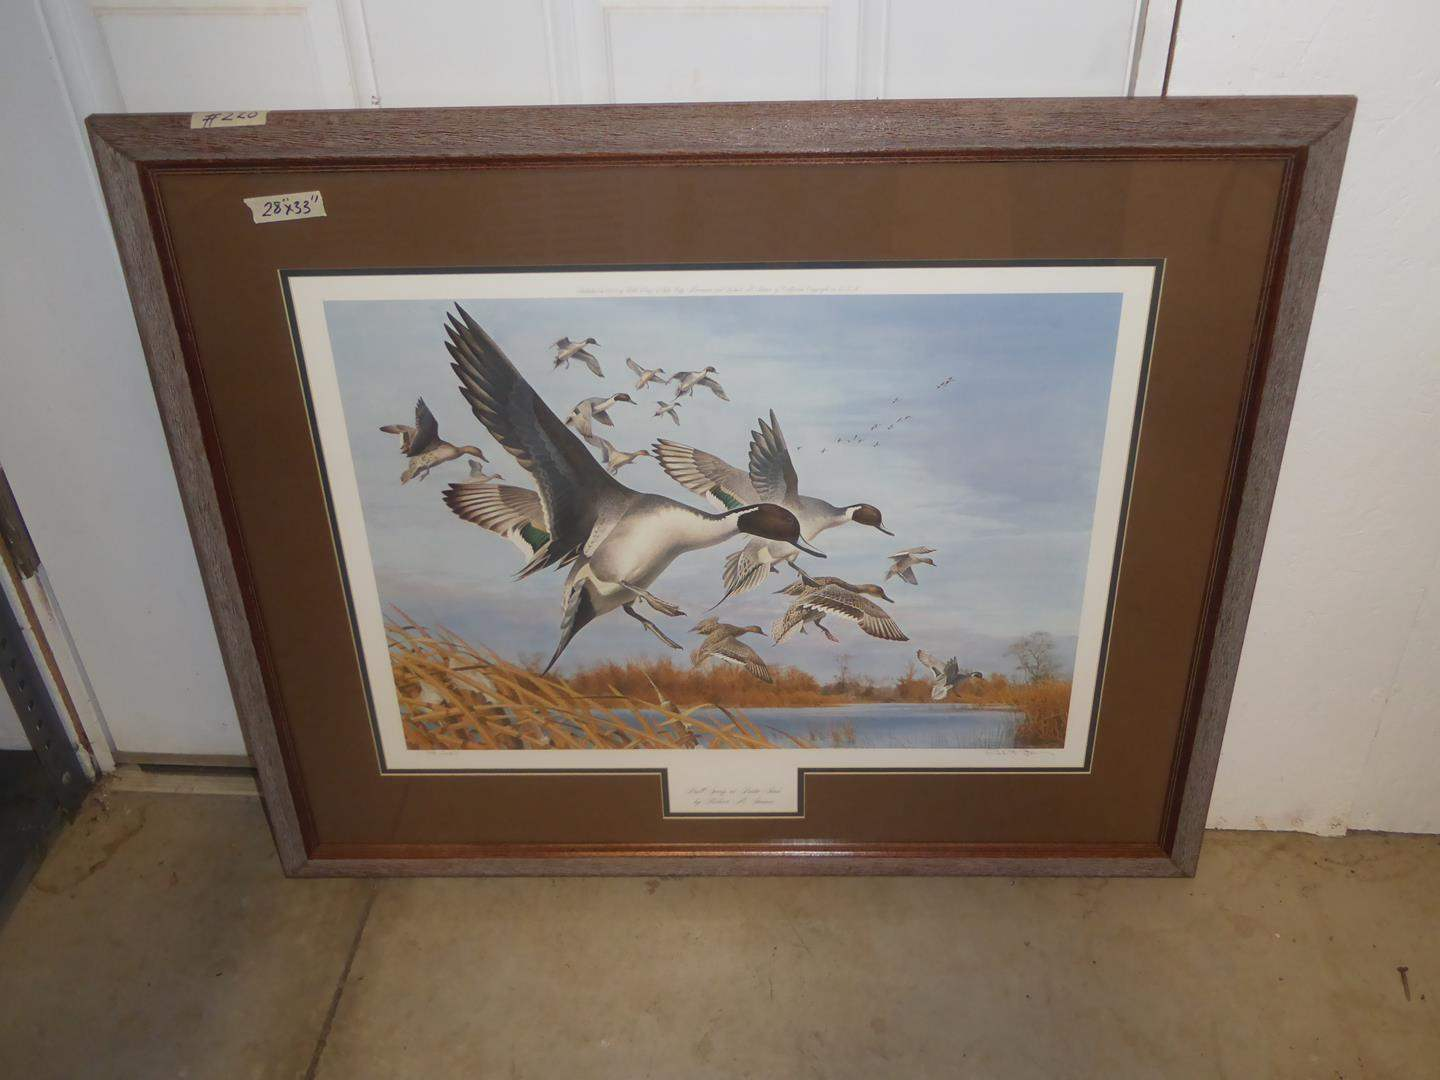 """Lot # 220 - Framed Signed Numbered Print """"Bull Spring at Butte Sink"""" by Robert M. Steiner 148/450 (main image)"""